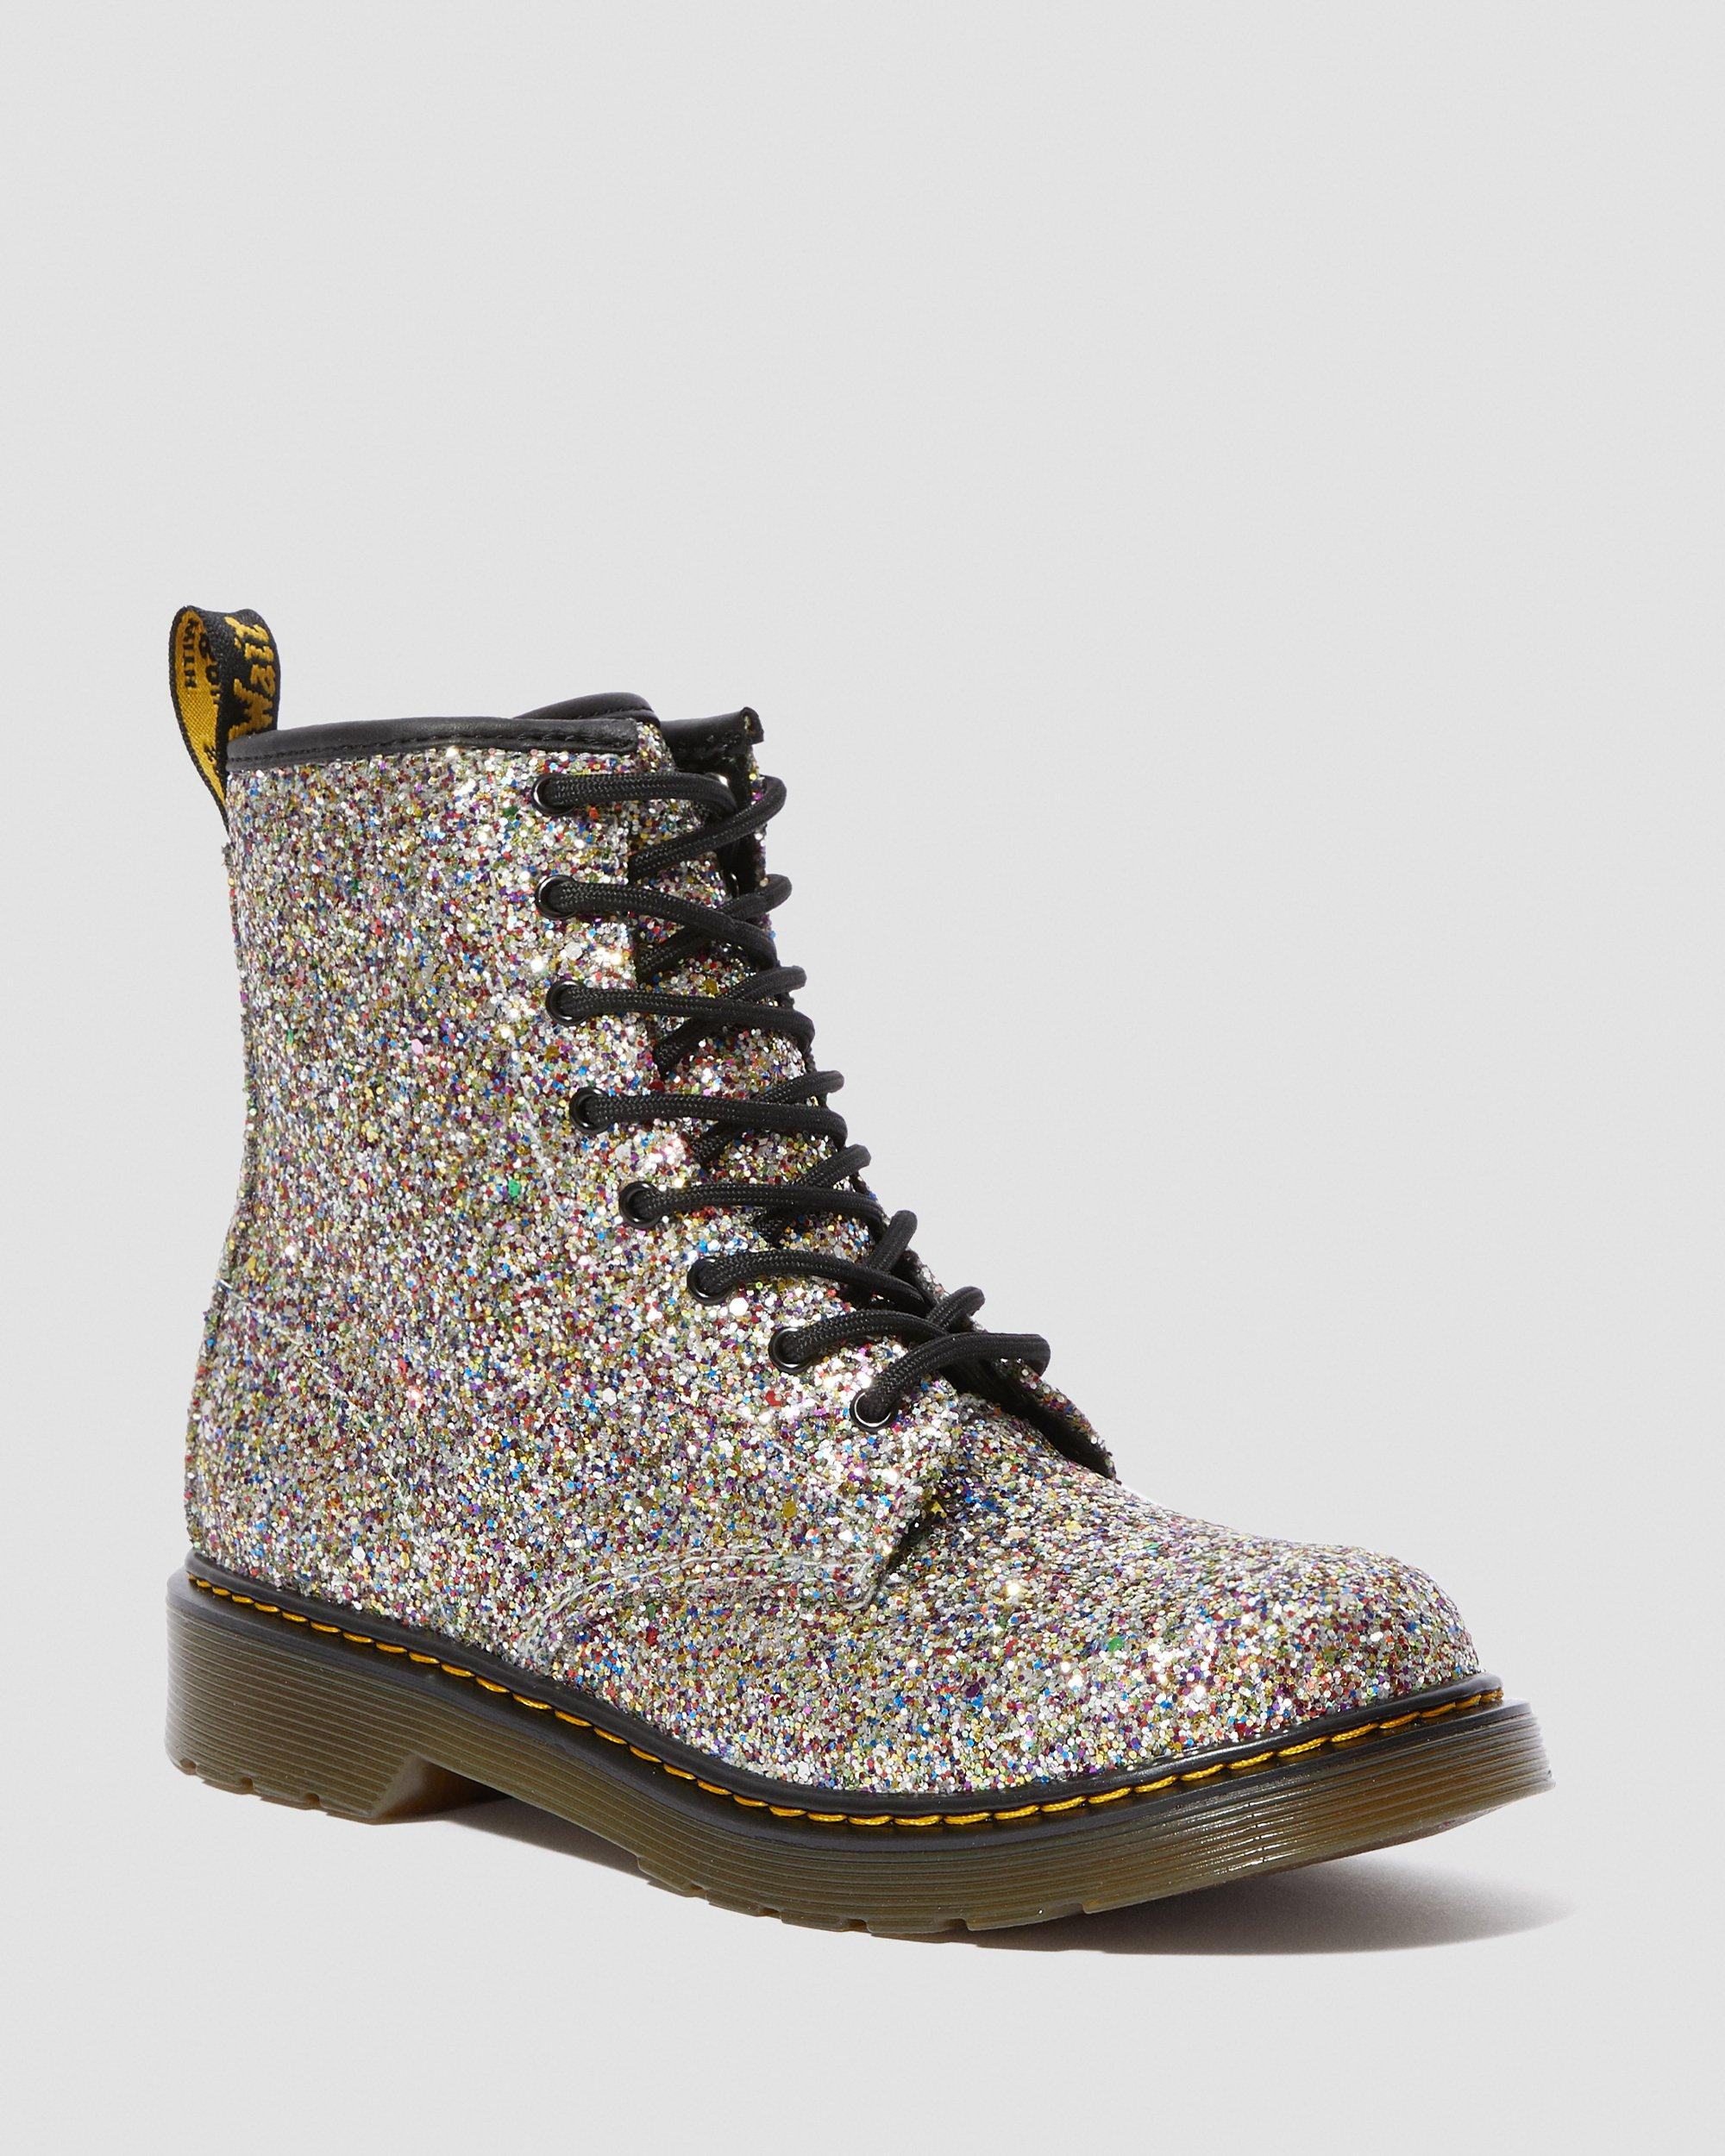 YOUTH 1460 CHUNKY GLITTER | Dr. Martens